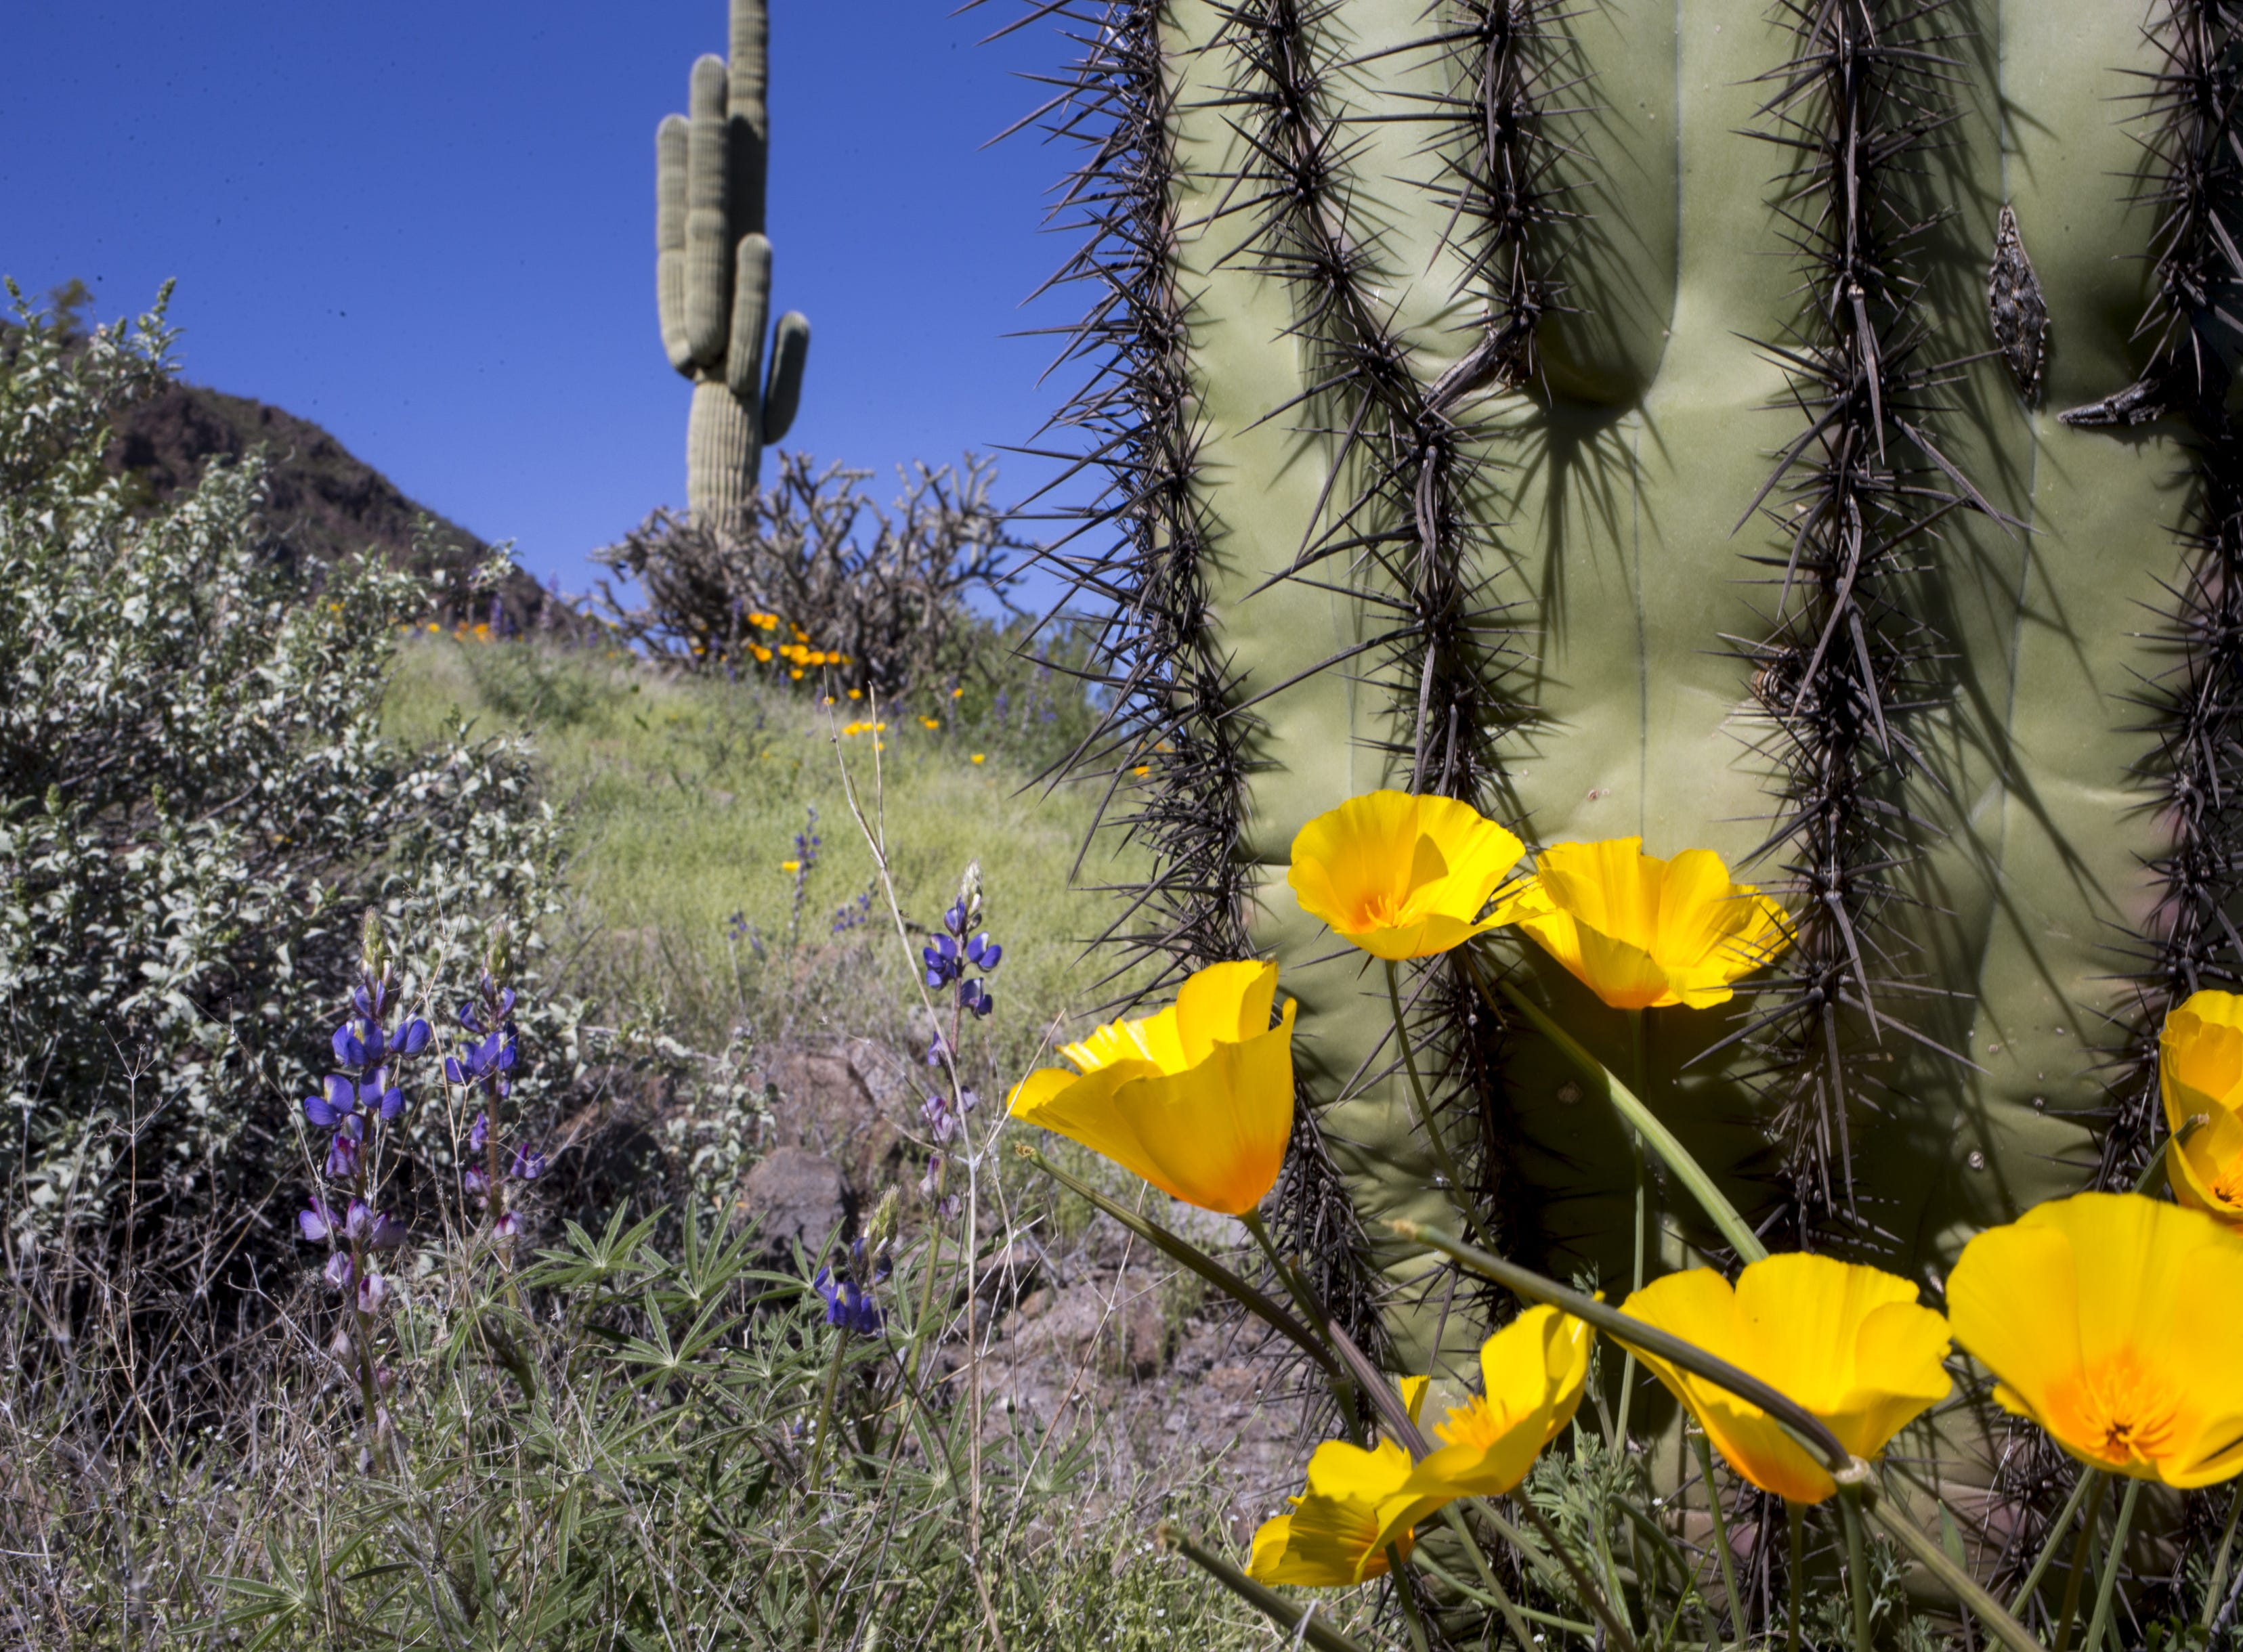 Poppies, lupine and saguaros, March 5, 2019, at Picacho Peak State Park, Arizona.